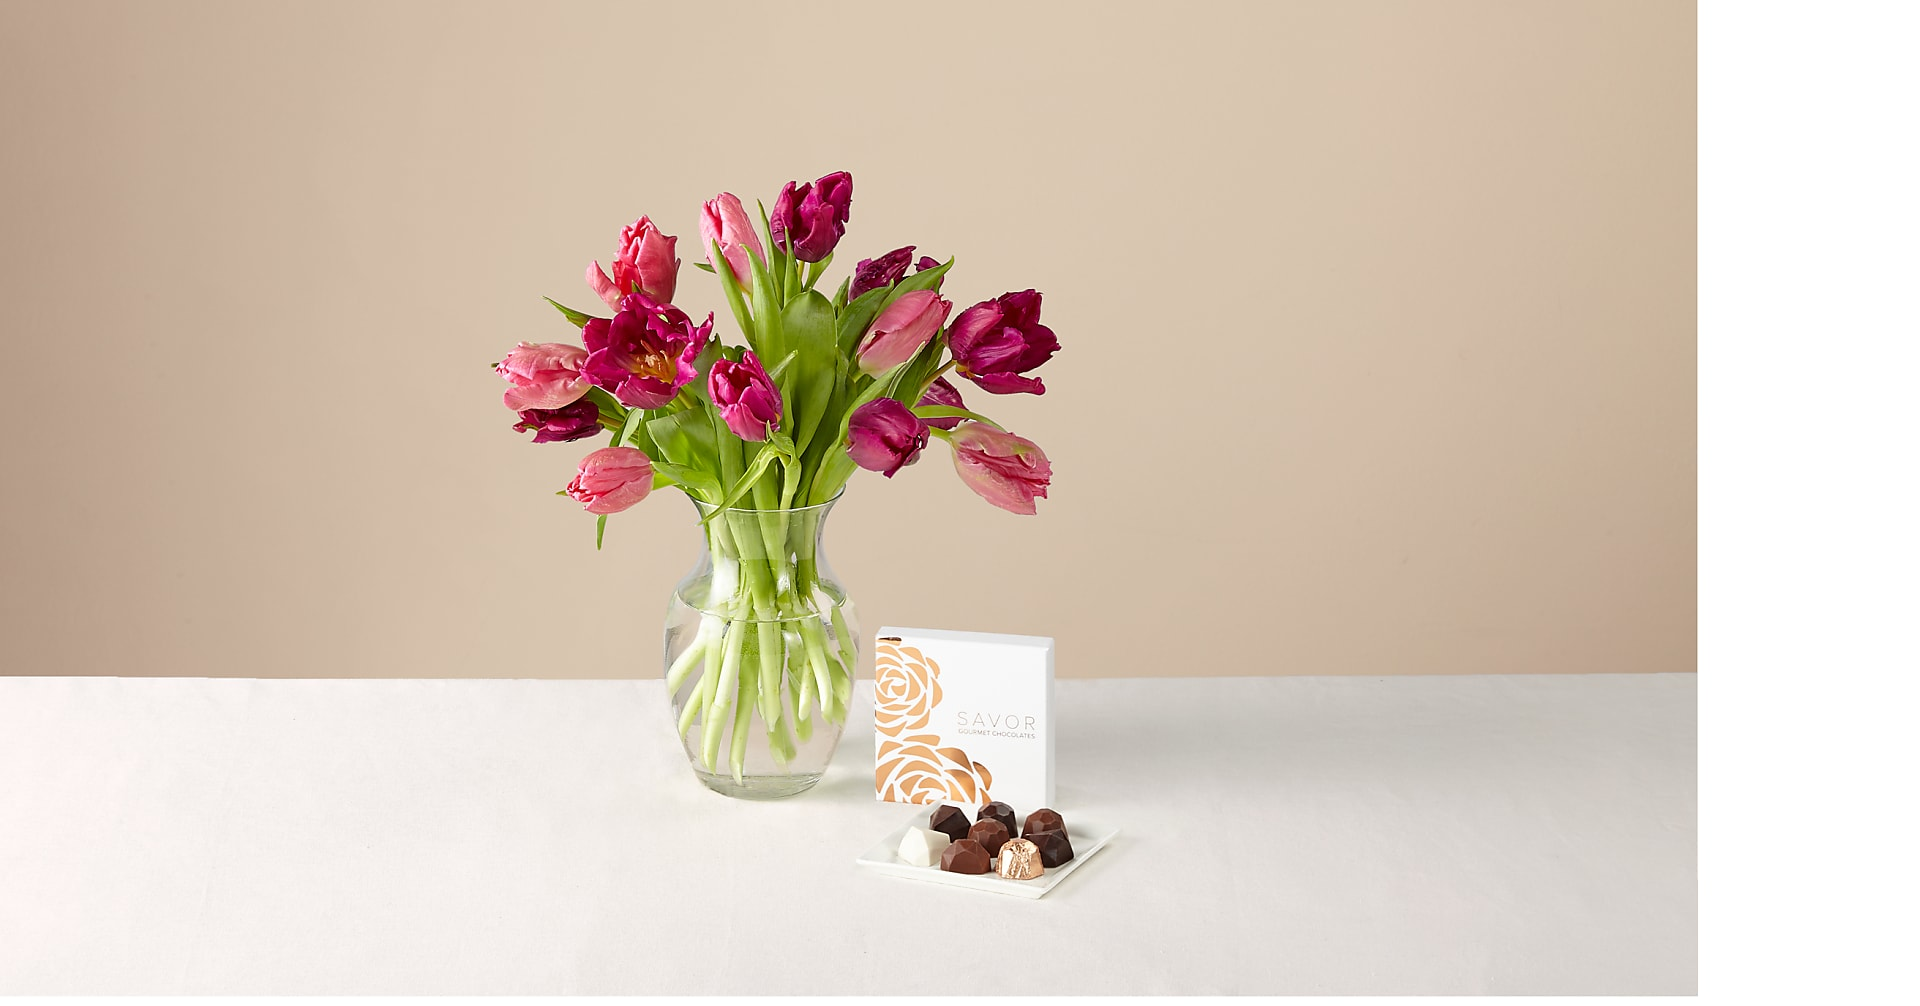 Specialty Tulip Mixed Bouquet with Glass Vase & Box of Chocolates